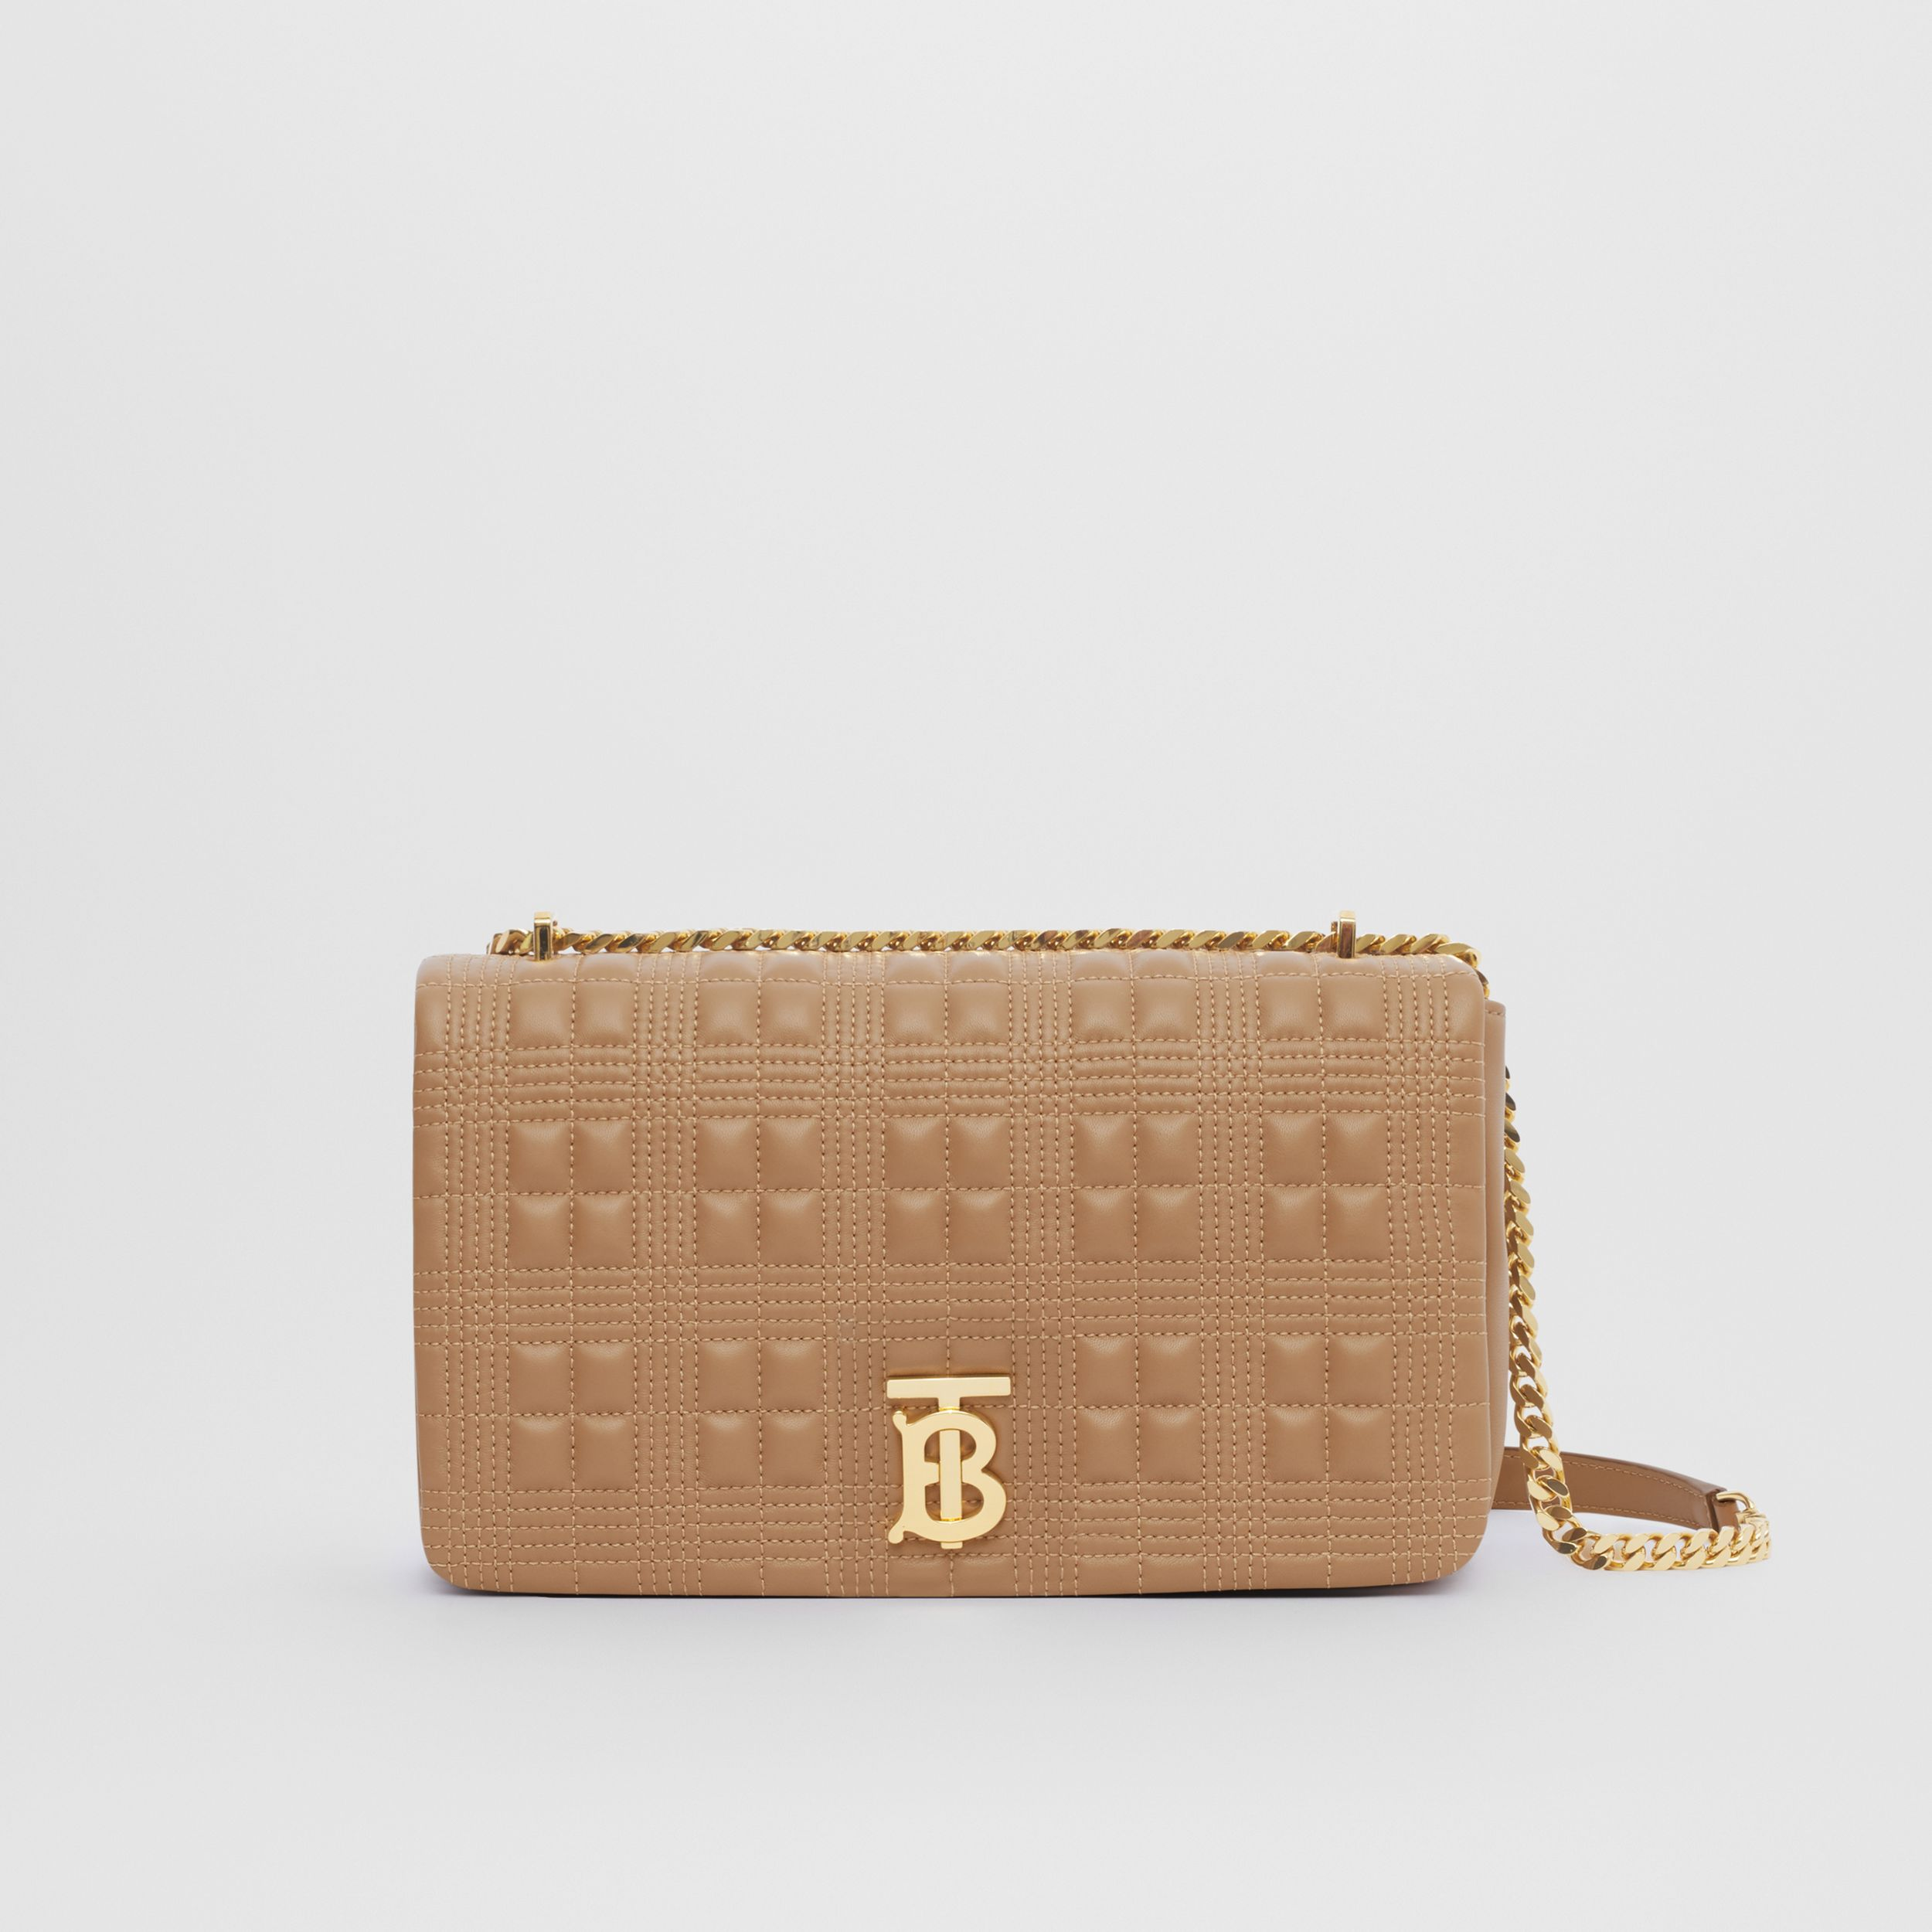 Medium Quilted Lambskin Lola Bag in Camel/light Gold - Women | Burberry United States - 1